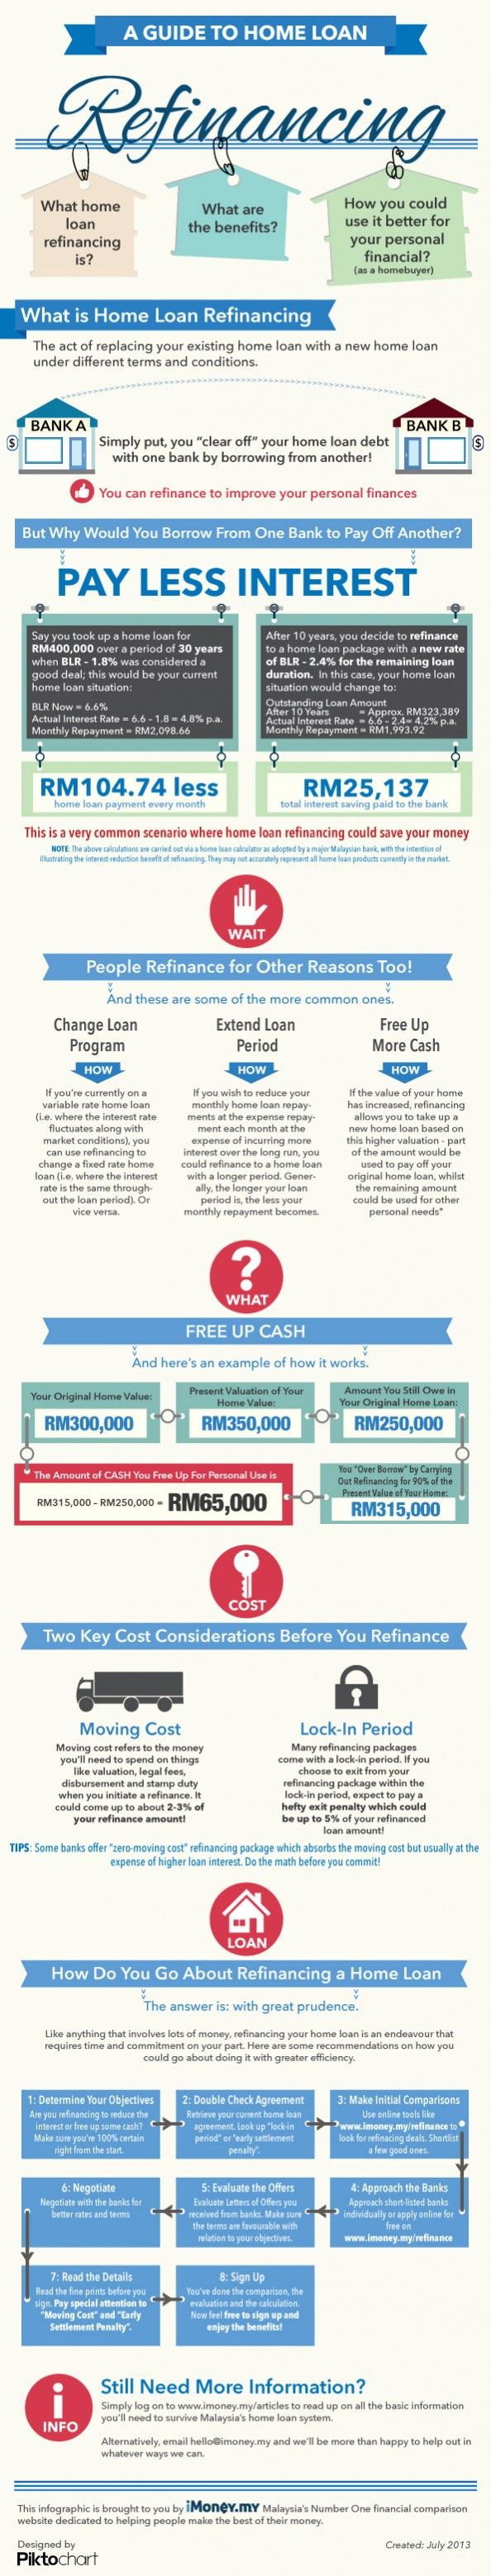 A Guide To Home Loan Refinancing Infographic Refinancing Mortgage Refinance Mortgage Home Loans